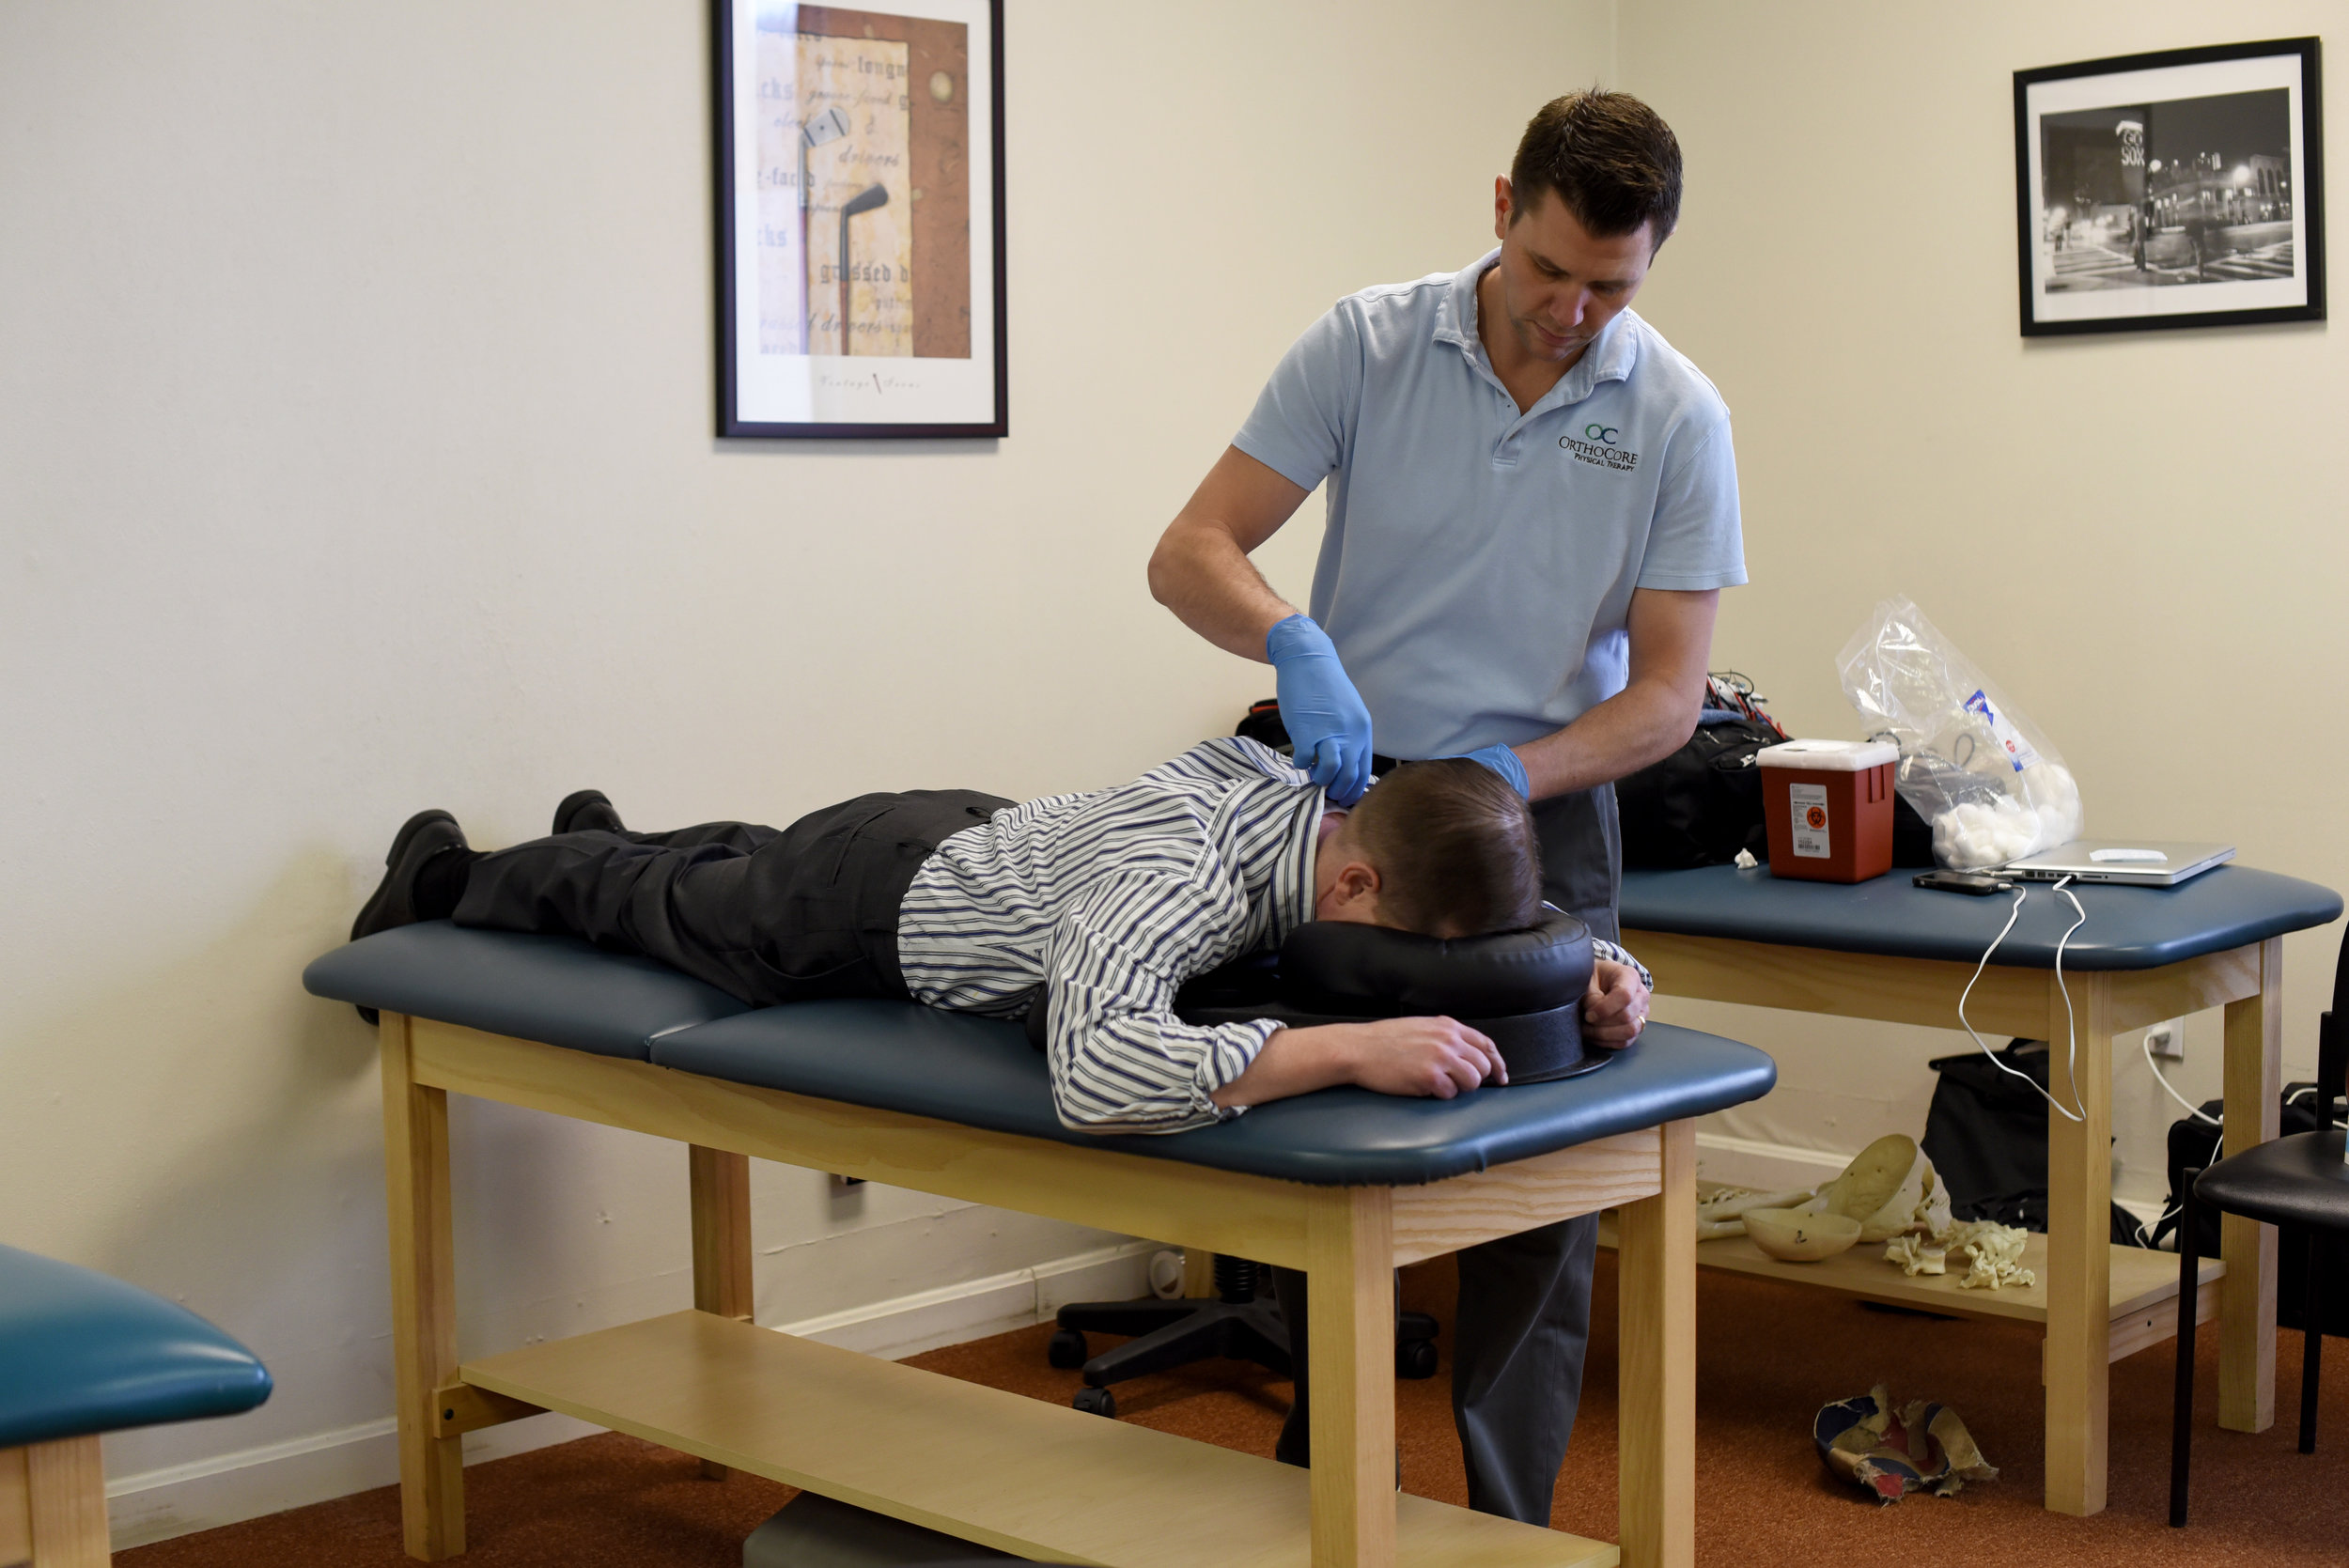 By hitting trigger points, functional dry needling can help relieve chronic pain.